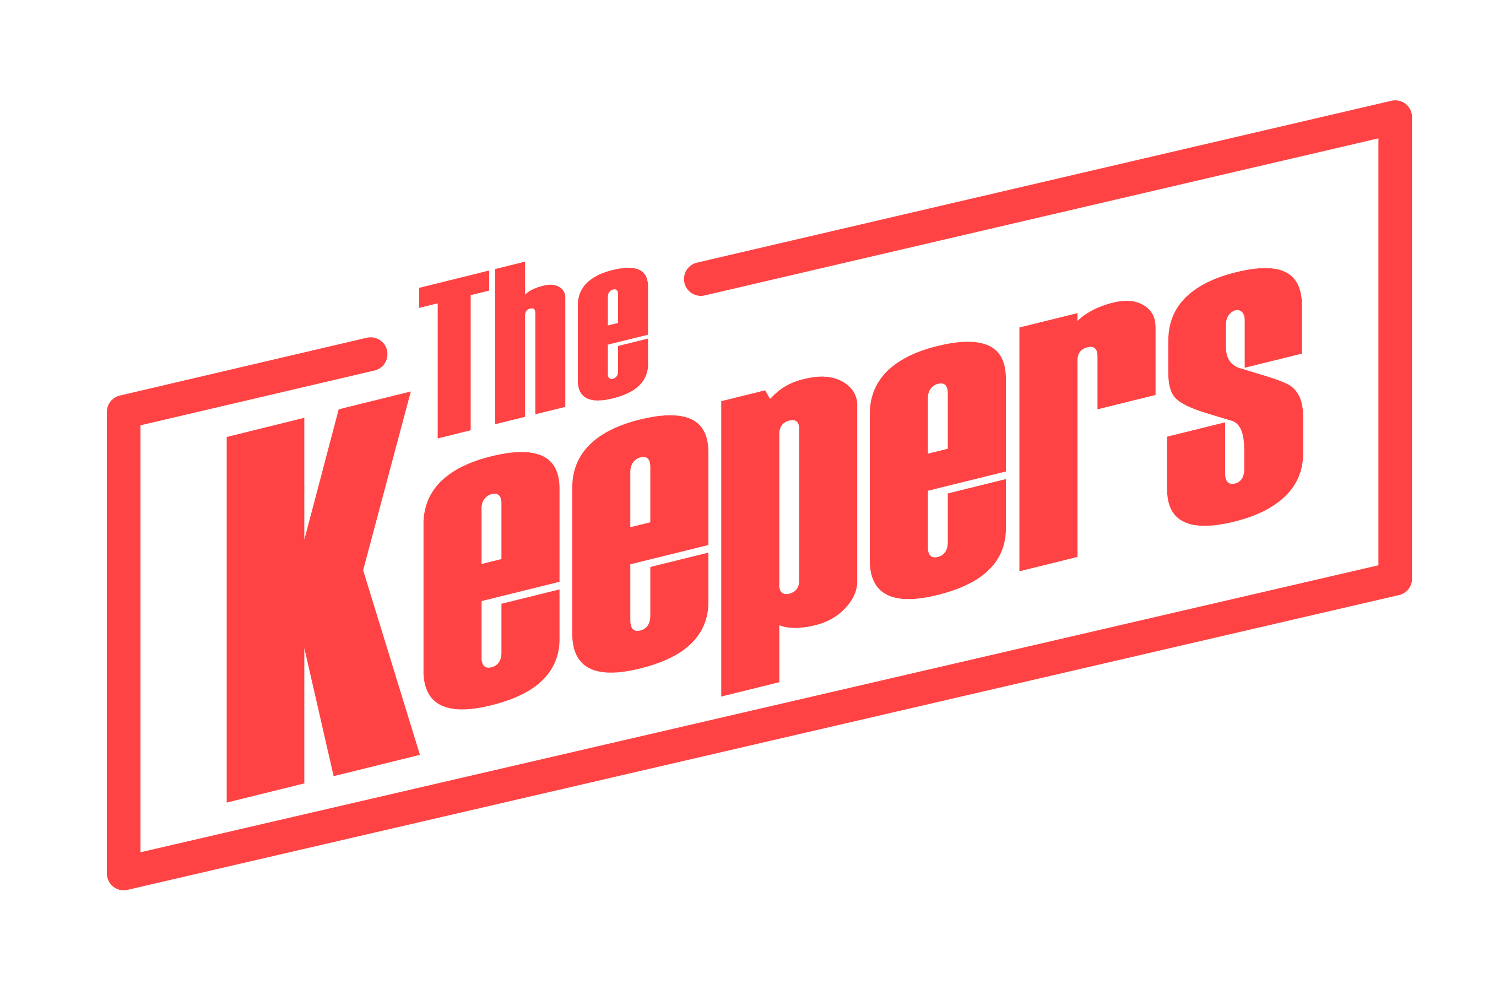 The Keepers, un nouveau nom pour des ambitions internationales